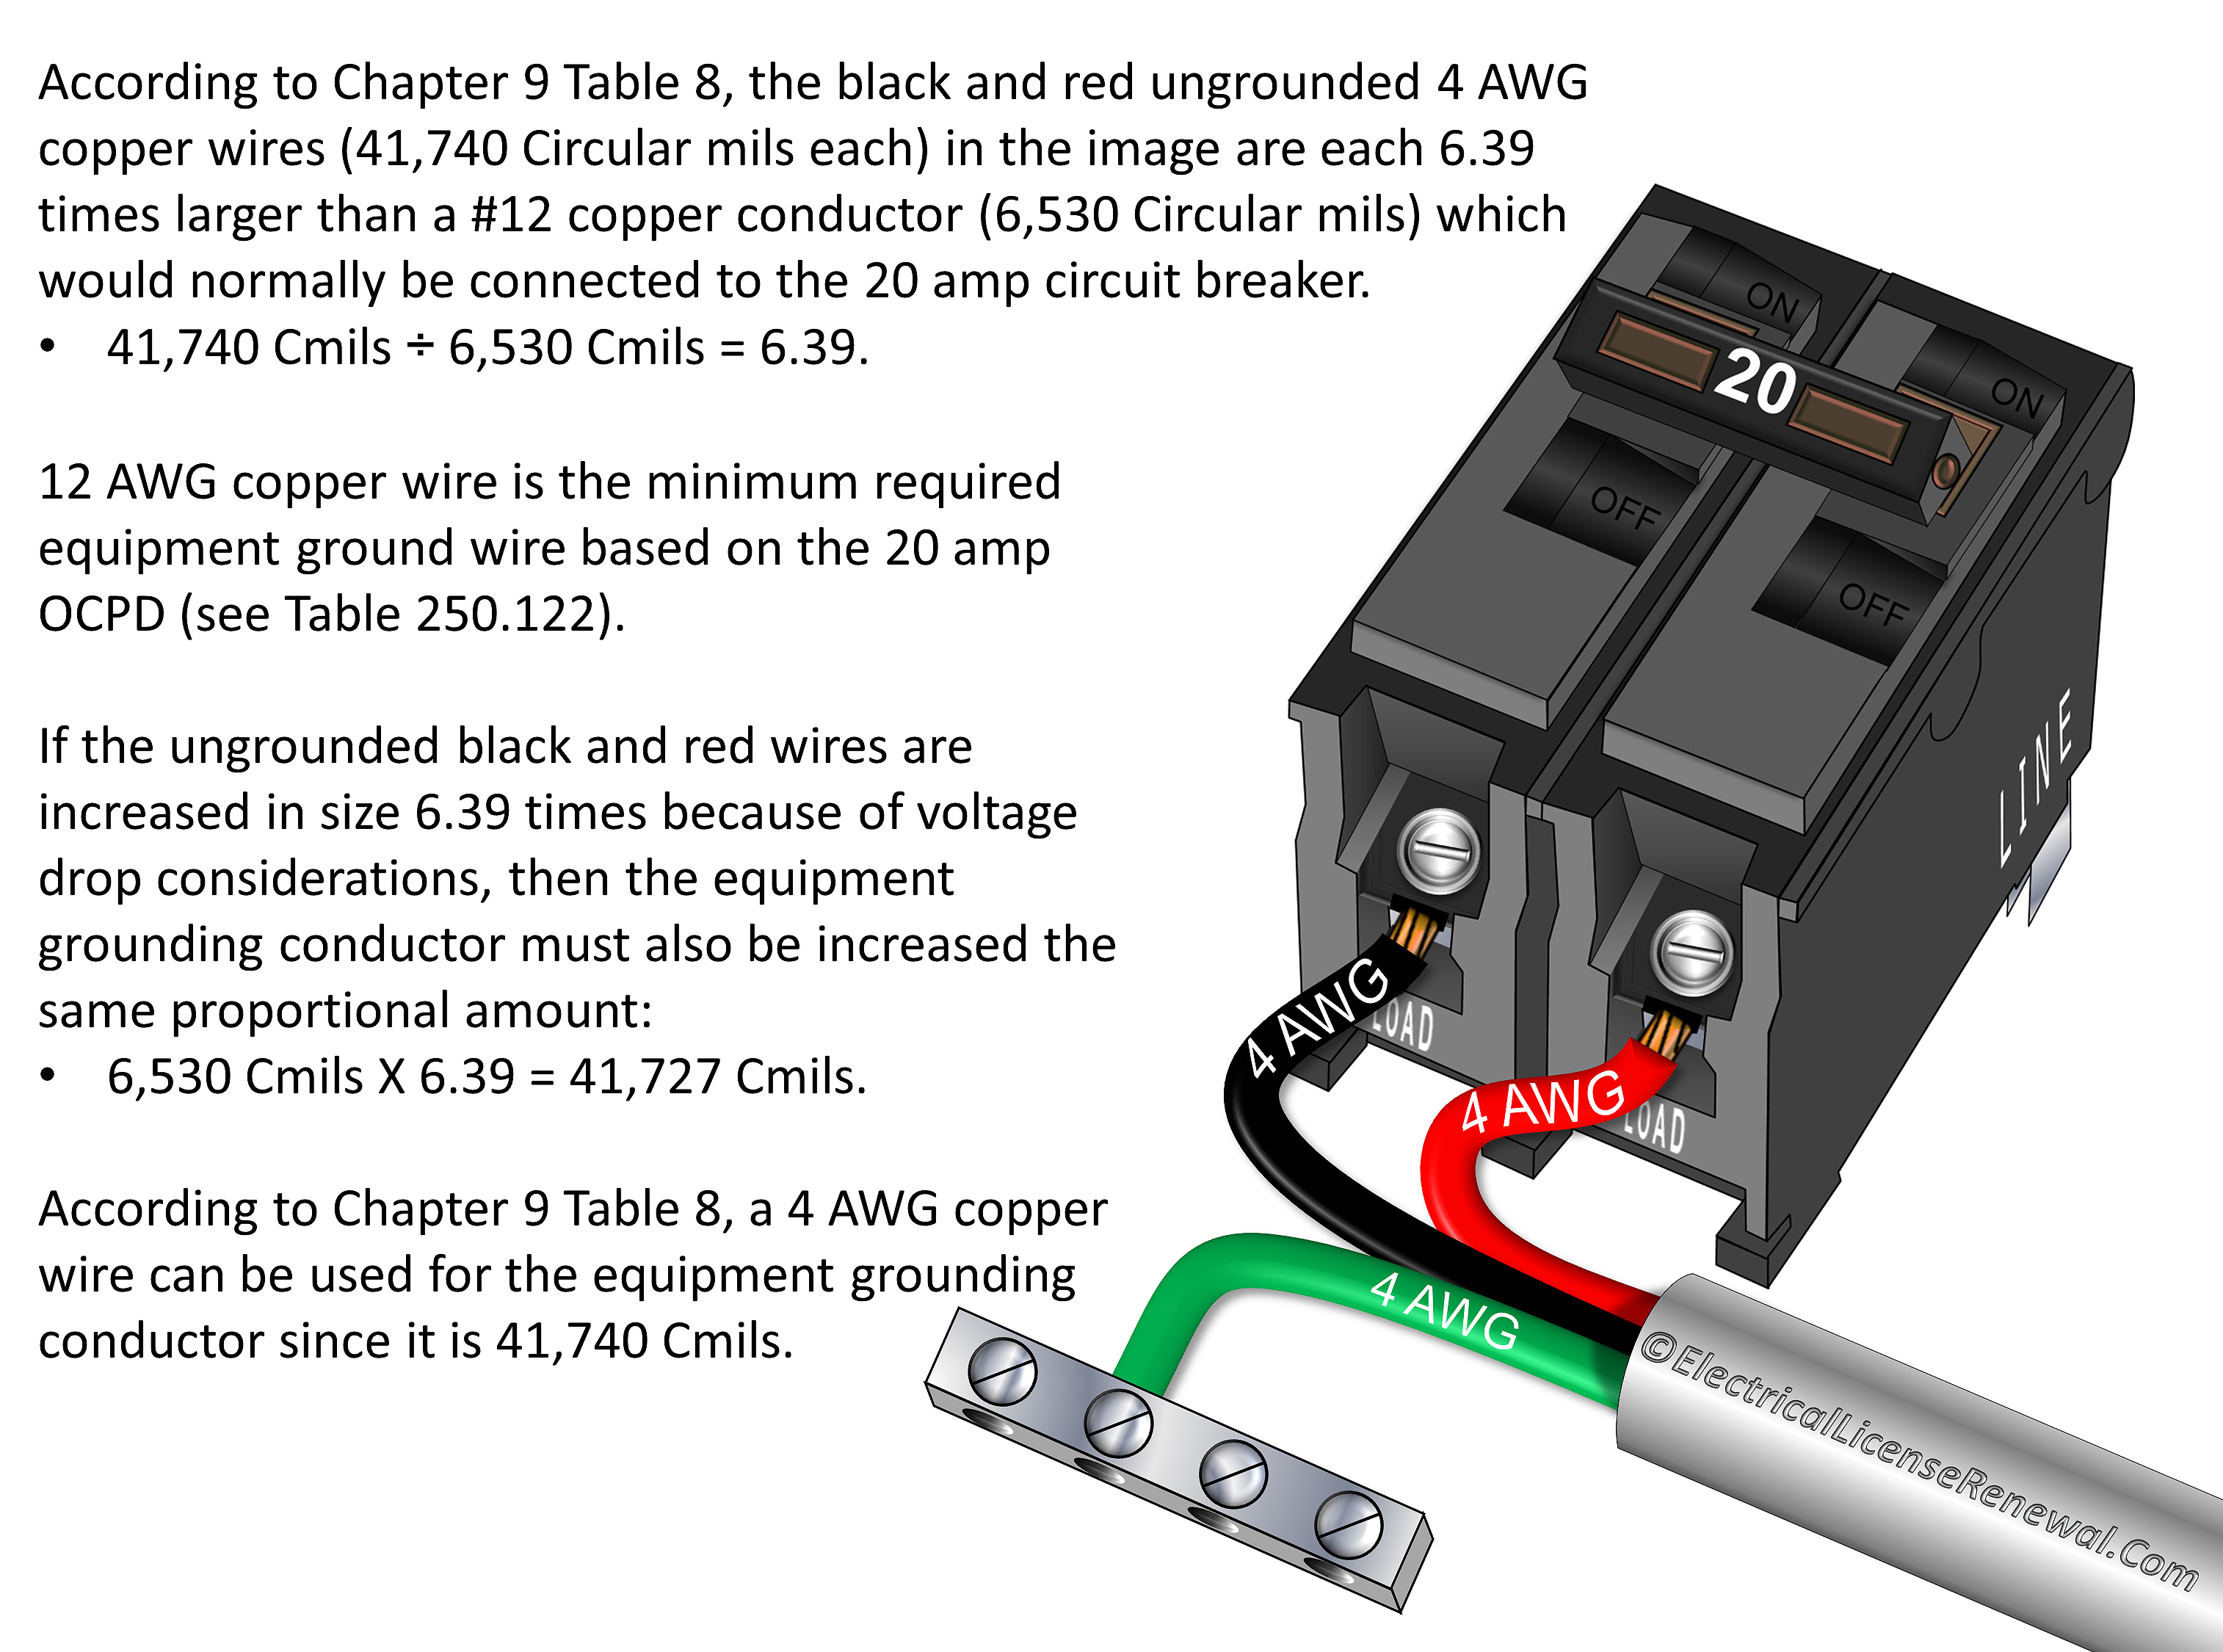 250122b Size Of Equipment Grounding Conductors Increased In Size